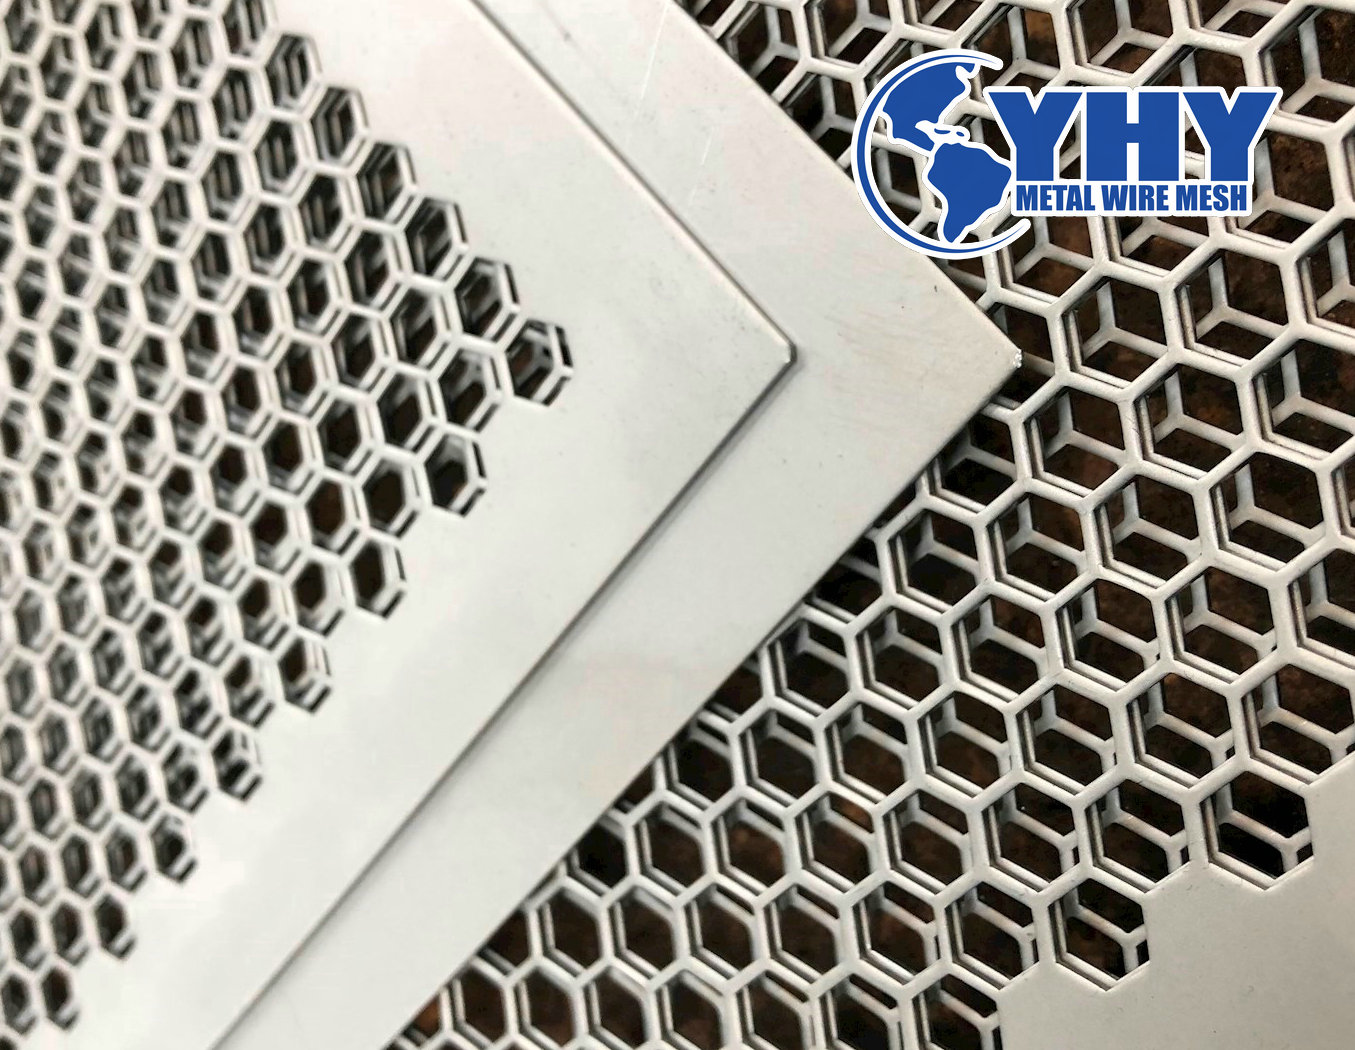 Architectural ornament Punching Mesh Panels for Exterior Wall